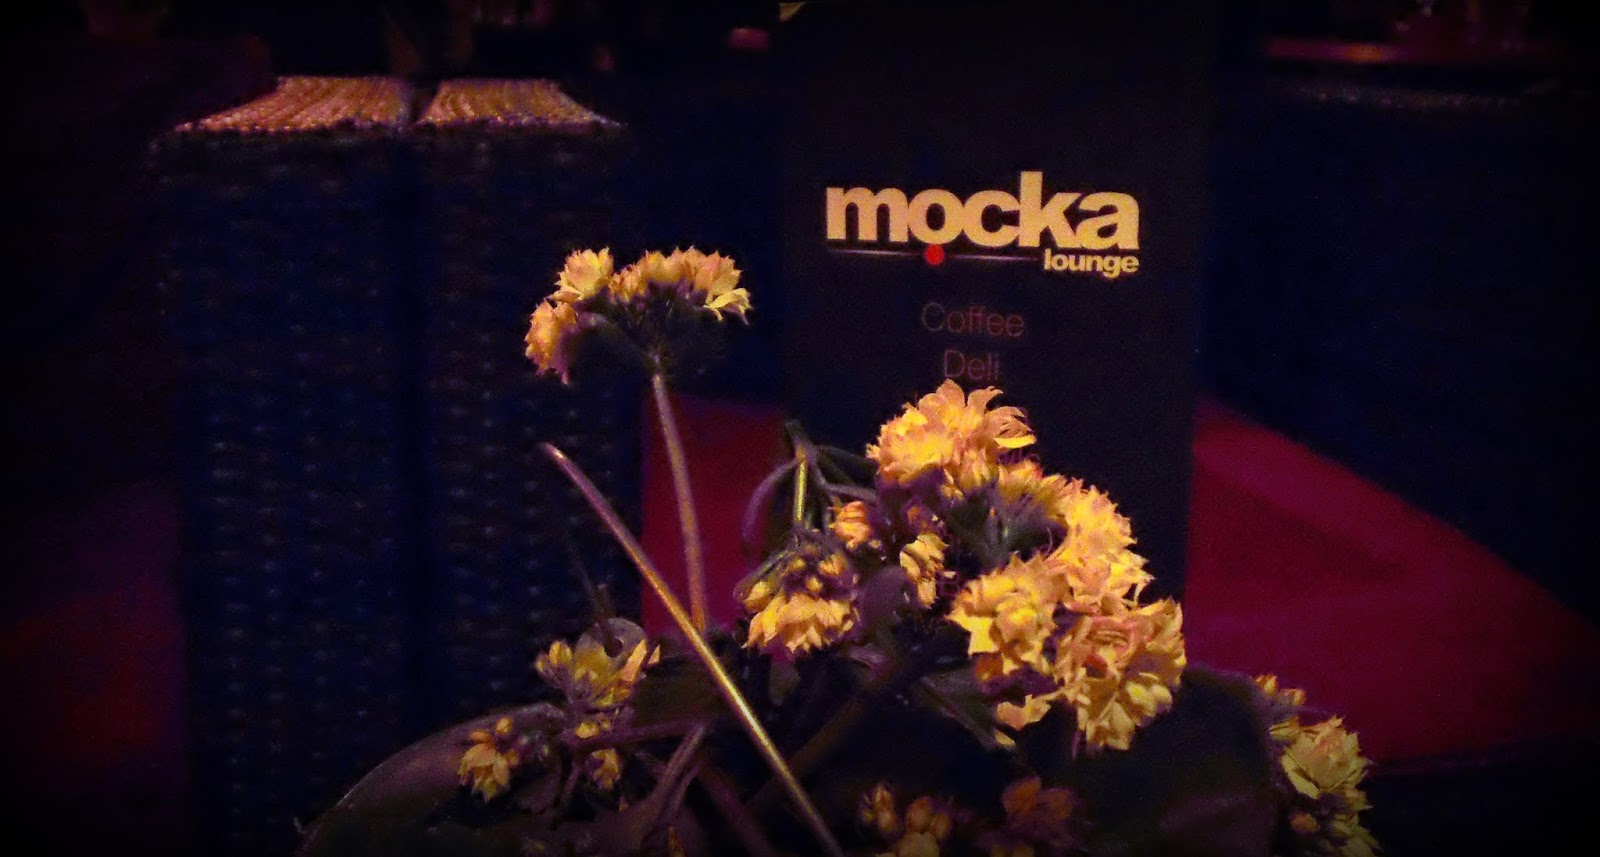 Speed dating mocka lounge cardiff